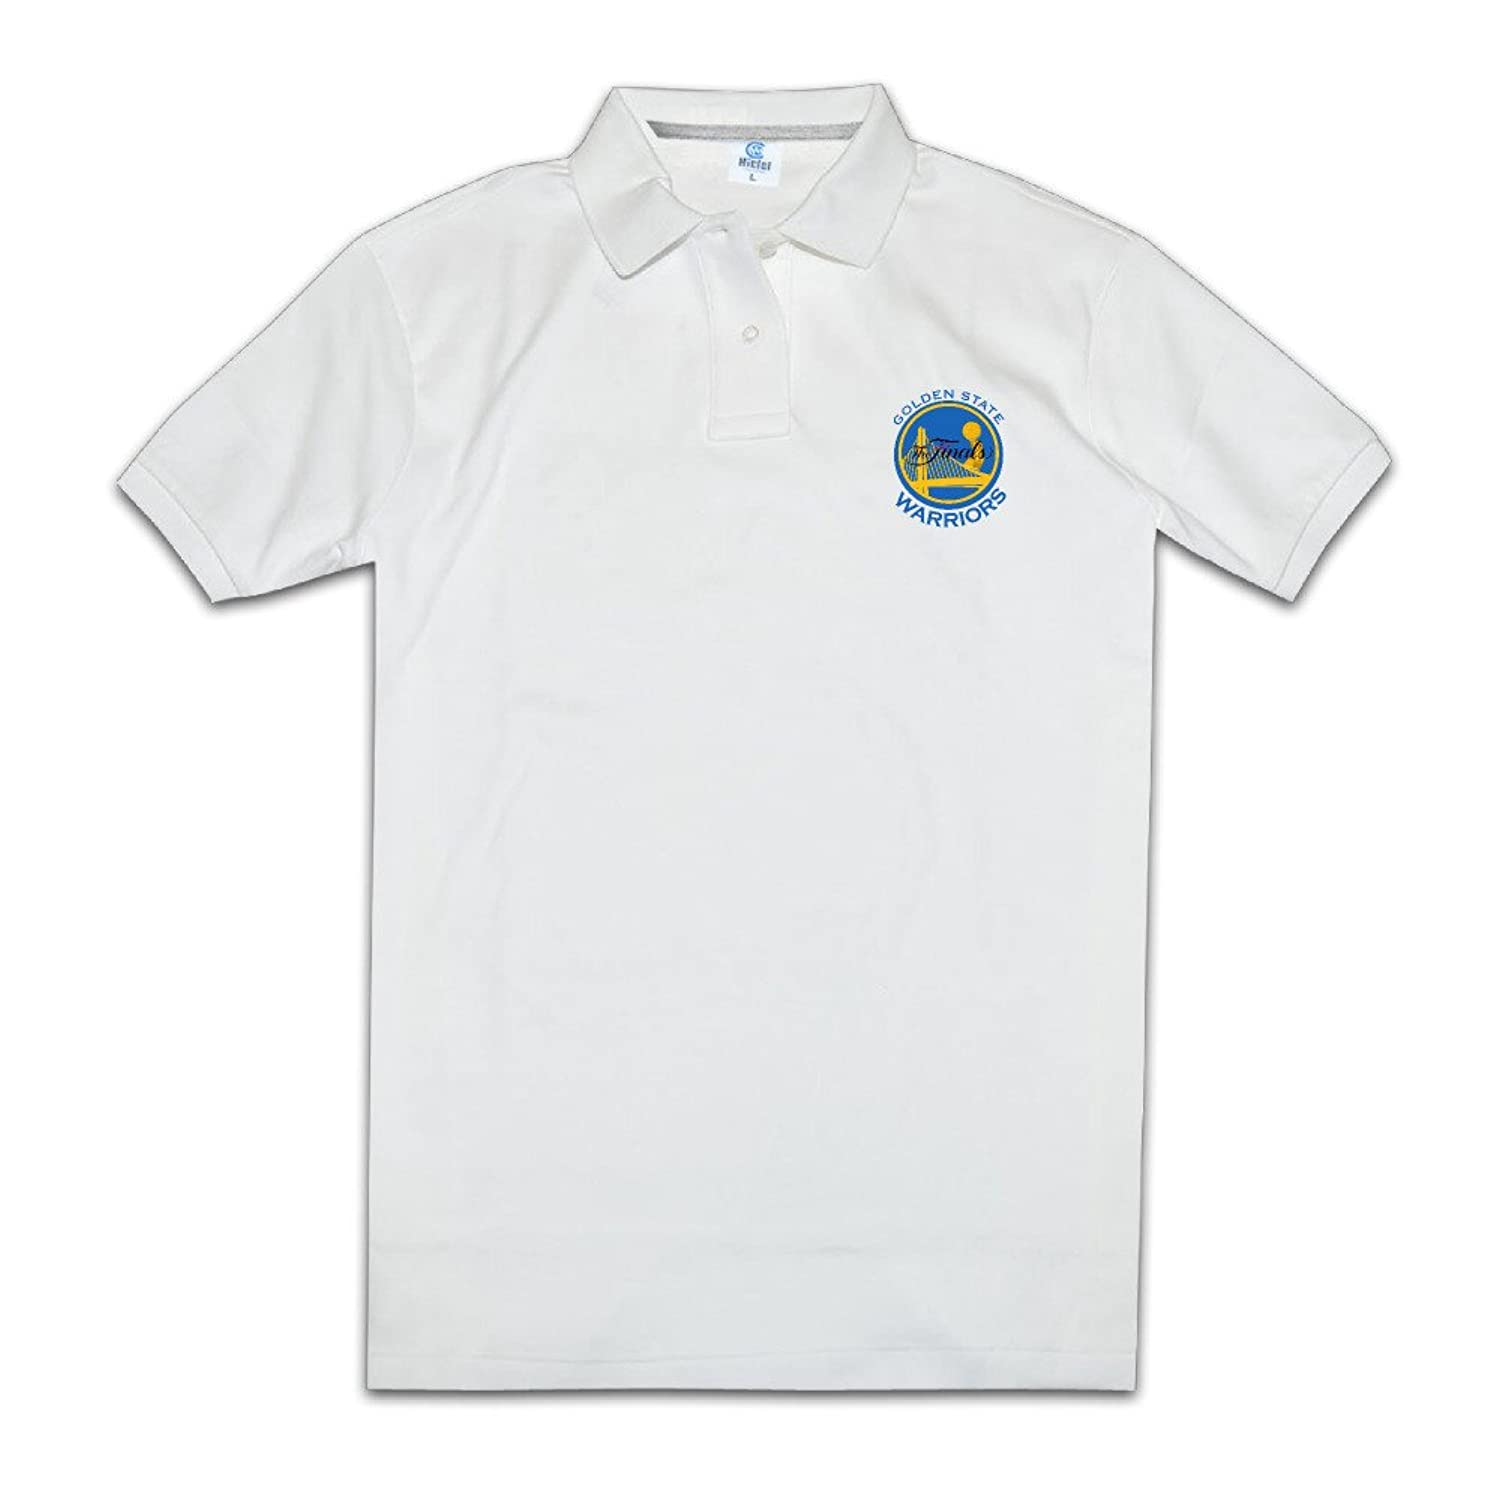 The Final Golden State Warriors Soft Polo T-shirts T-shirts